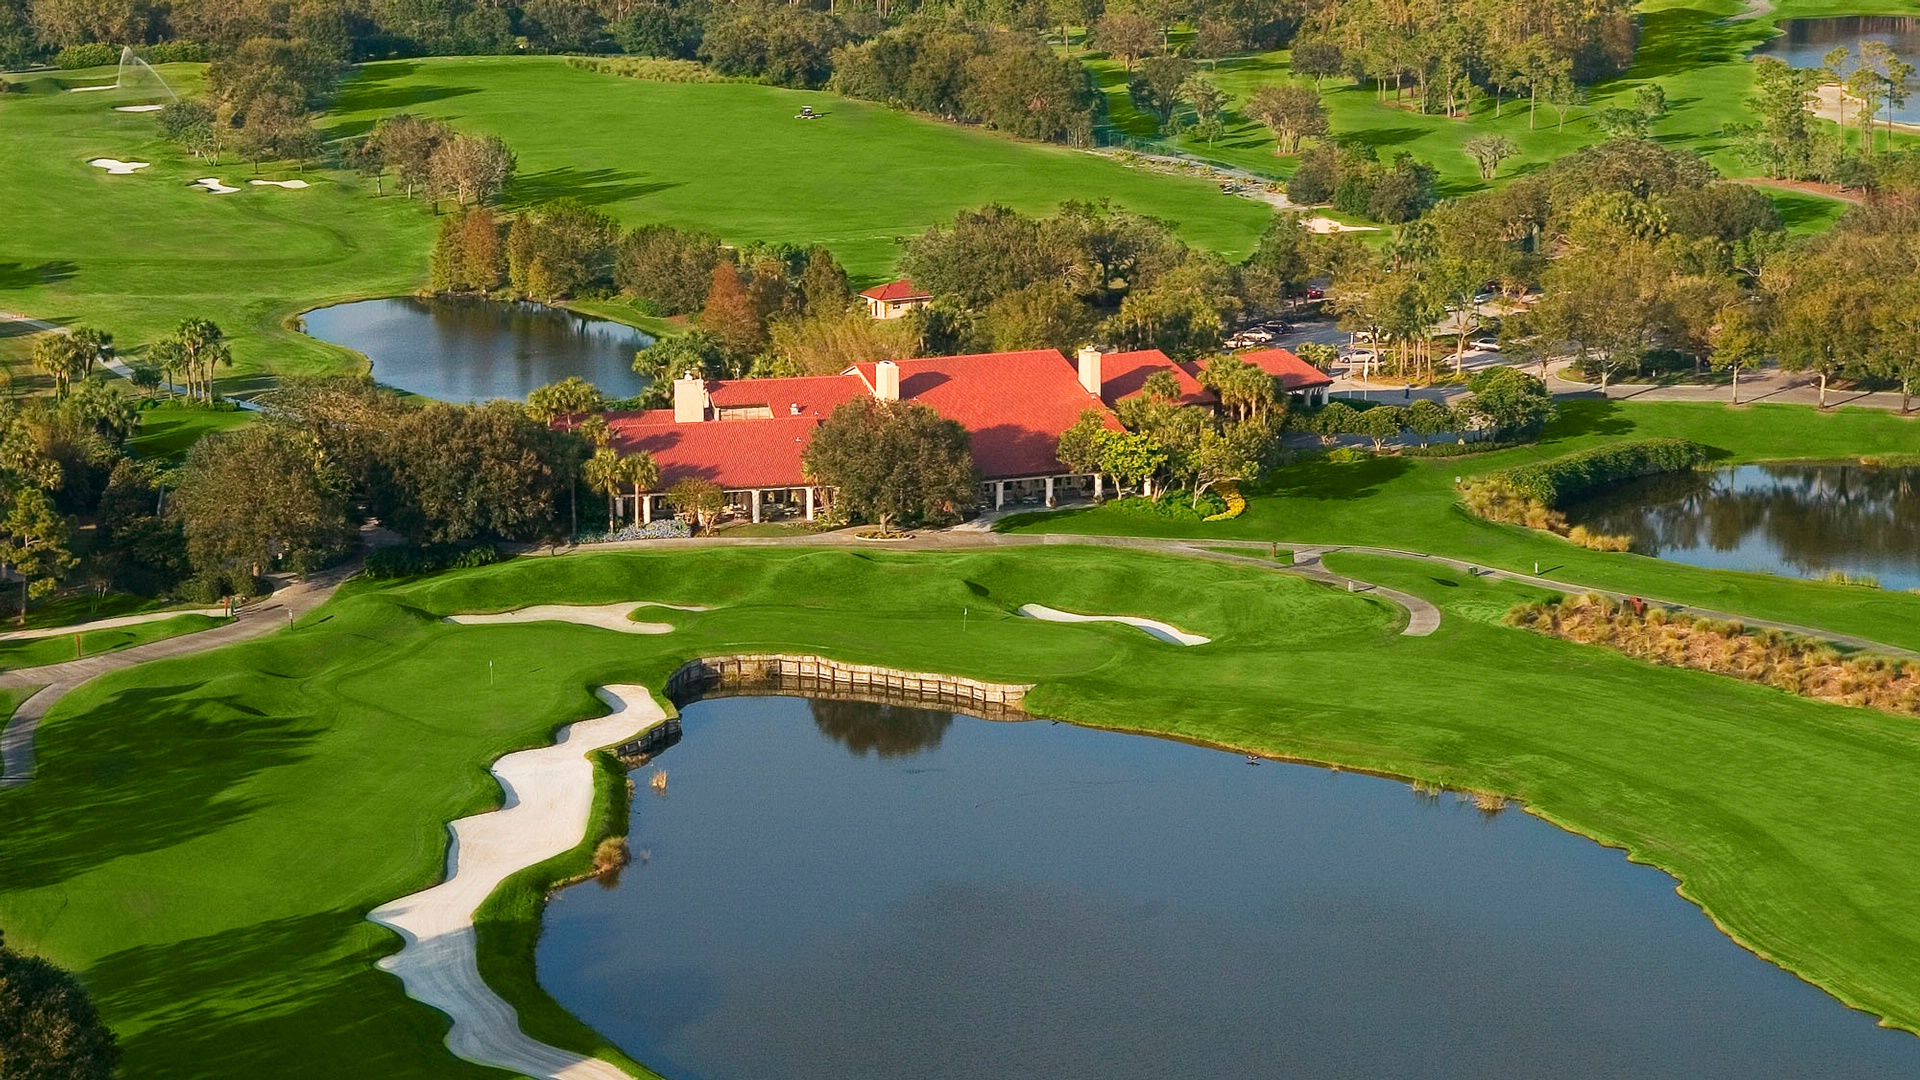 Aerial View of The Club House at Villas